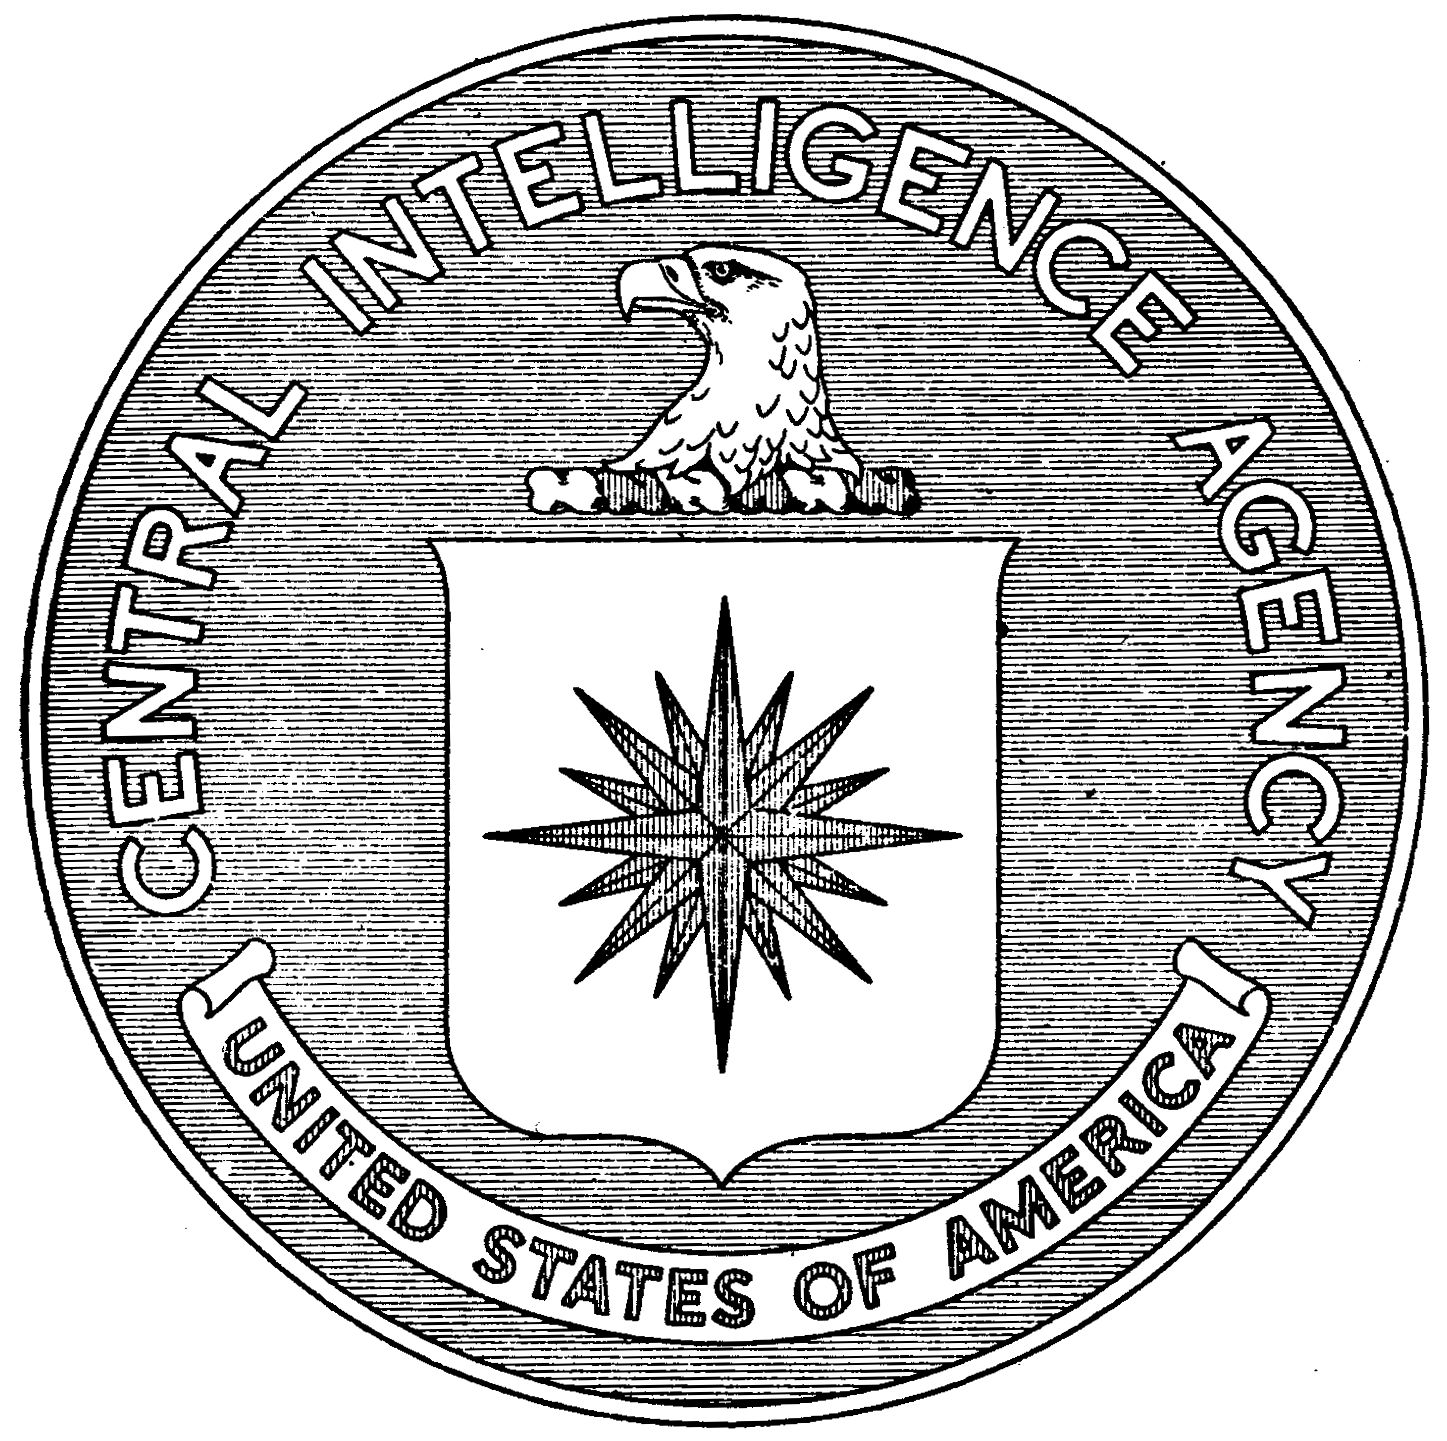 scientology  the cia and their crash of symbols